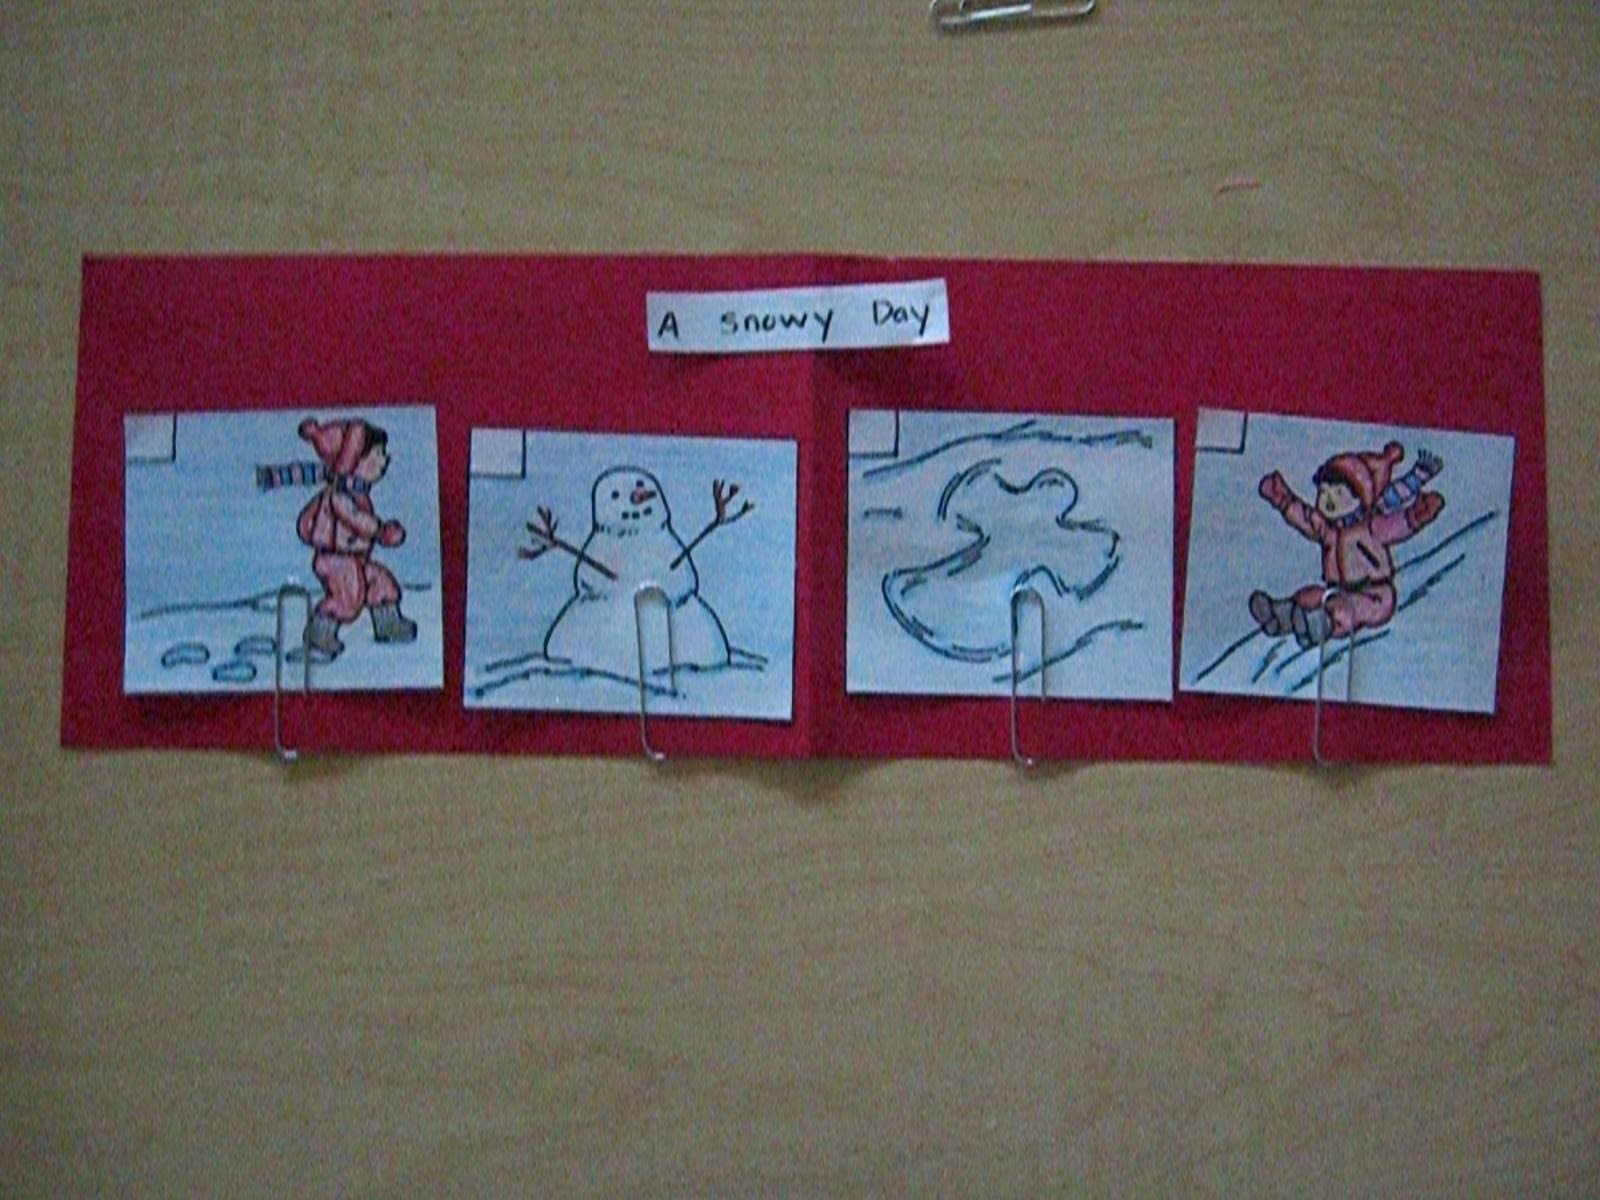 Sequencing A Snowy Day By Ezra Jack Keates